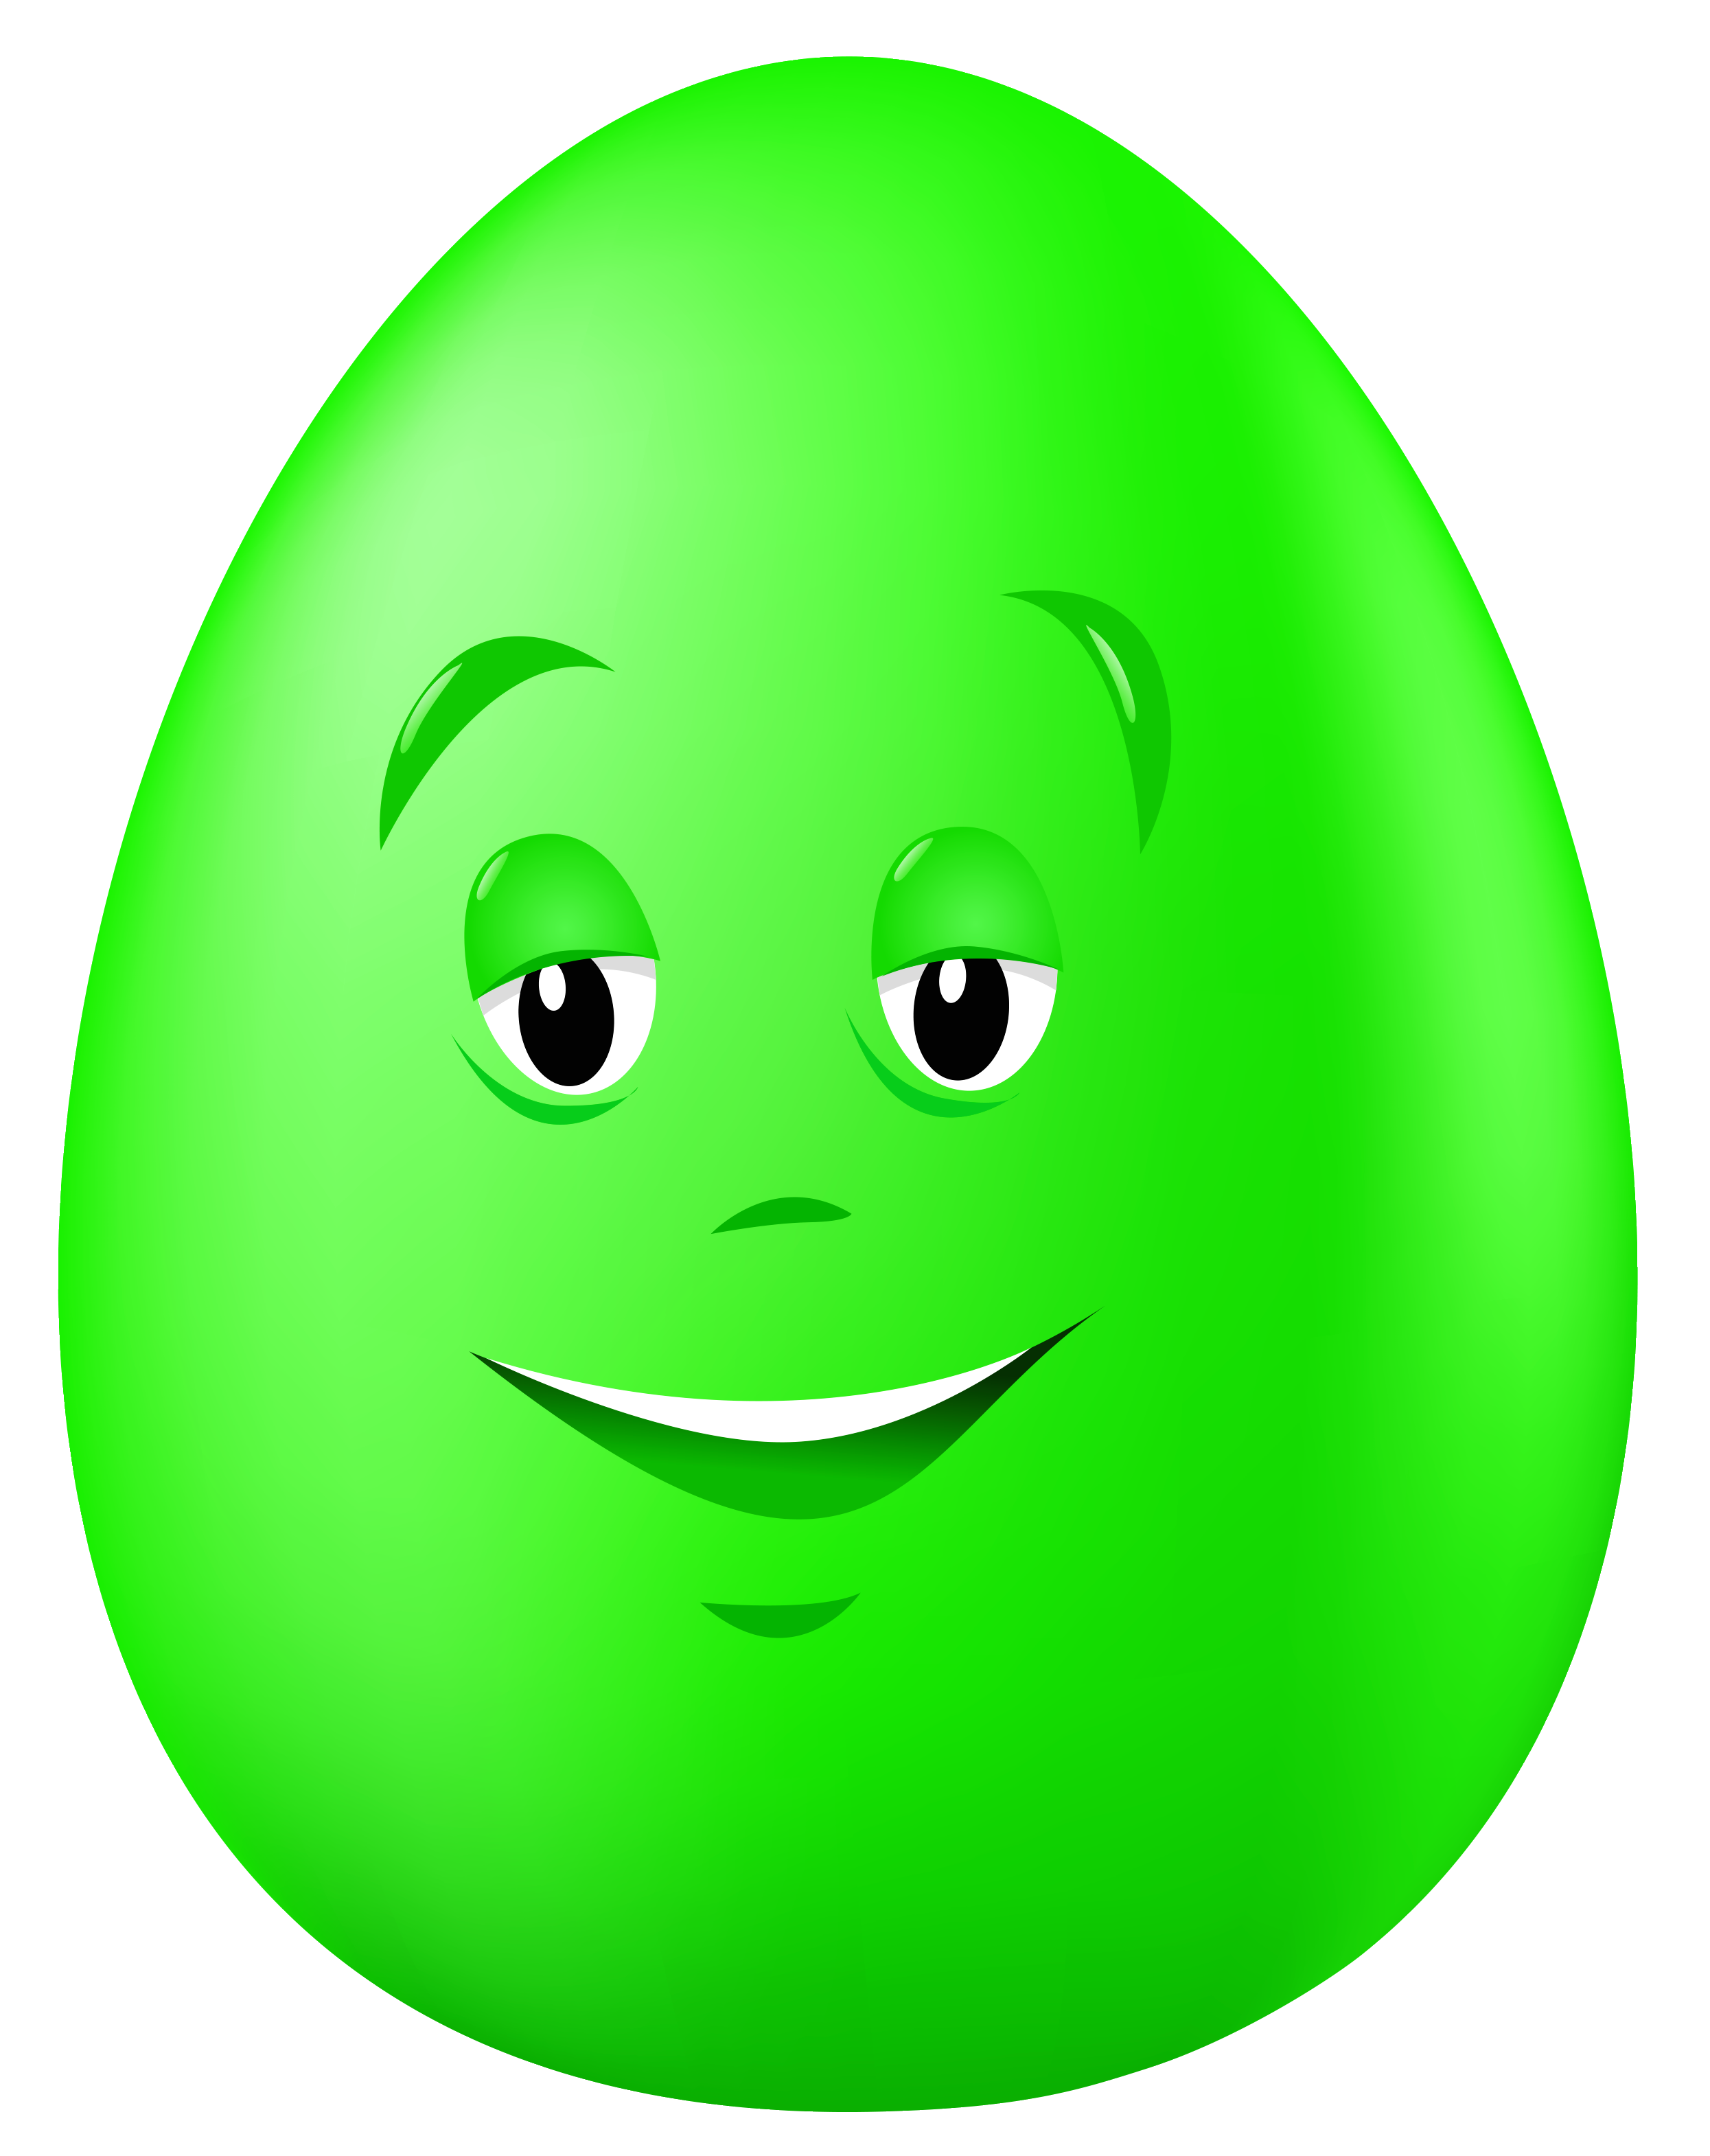 Green egg clipart.